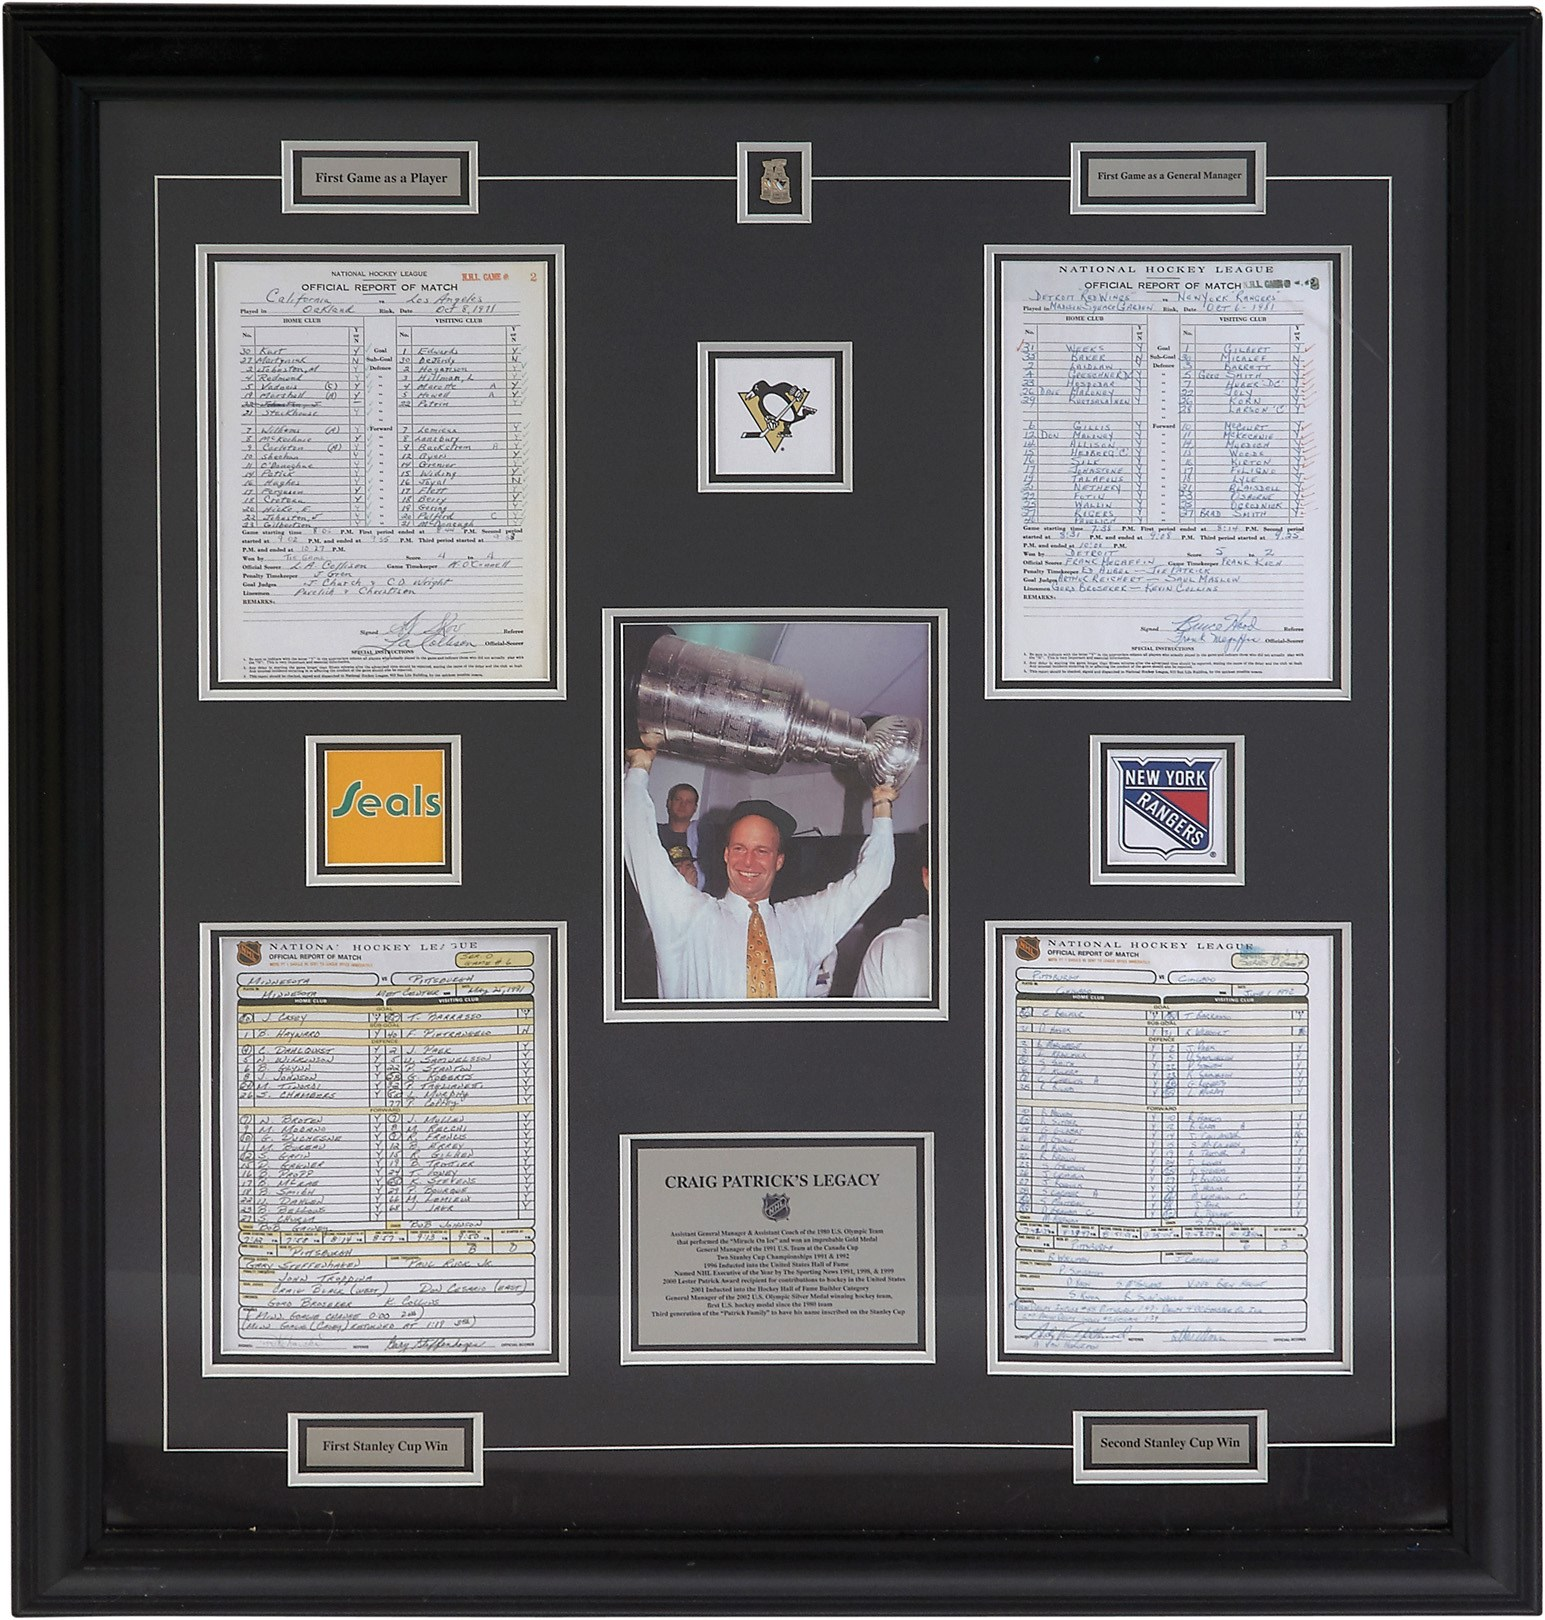 The Craig Patrick Hockey Collection - Leland's Classic